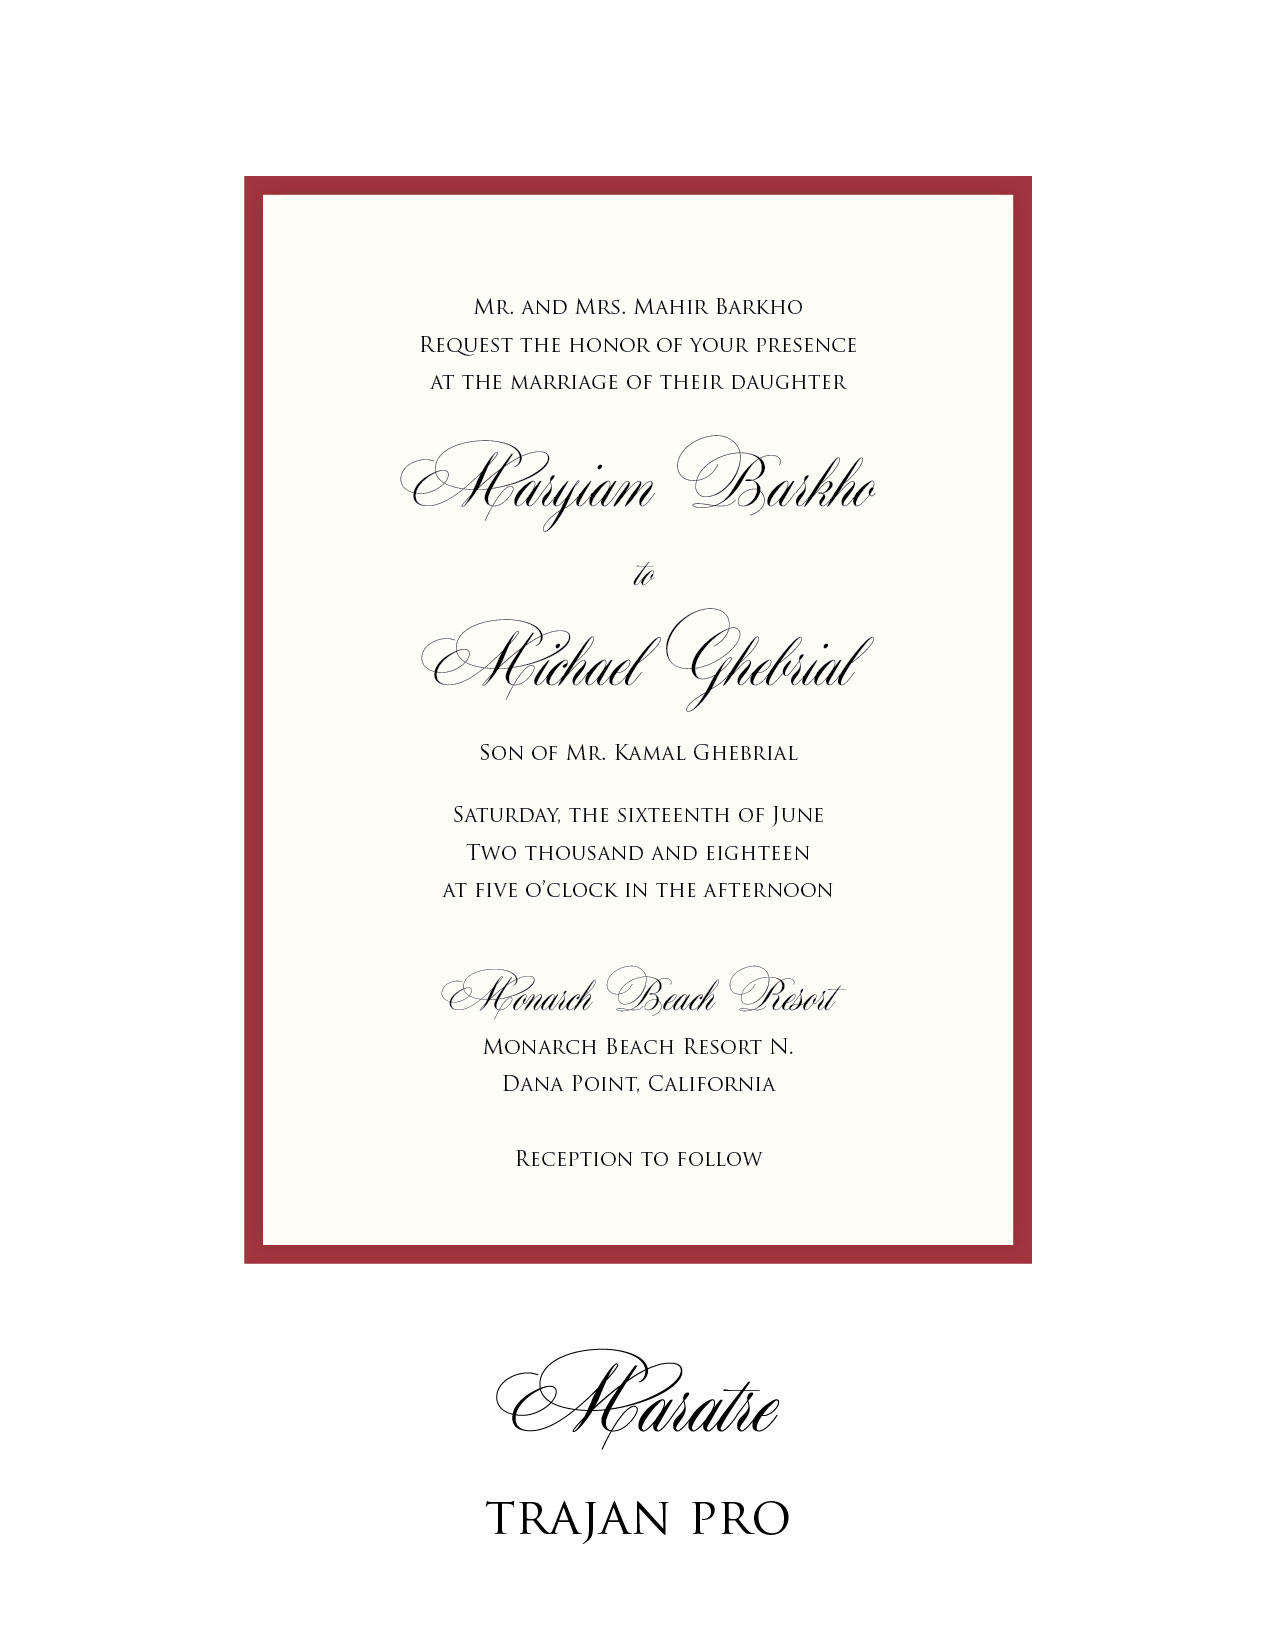 Wedding Fonts_Maratre.jpg